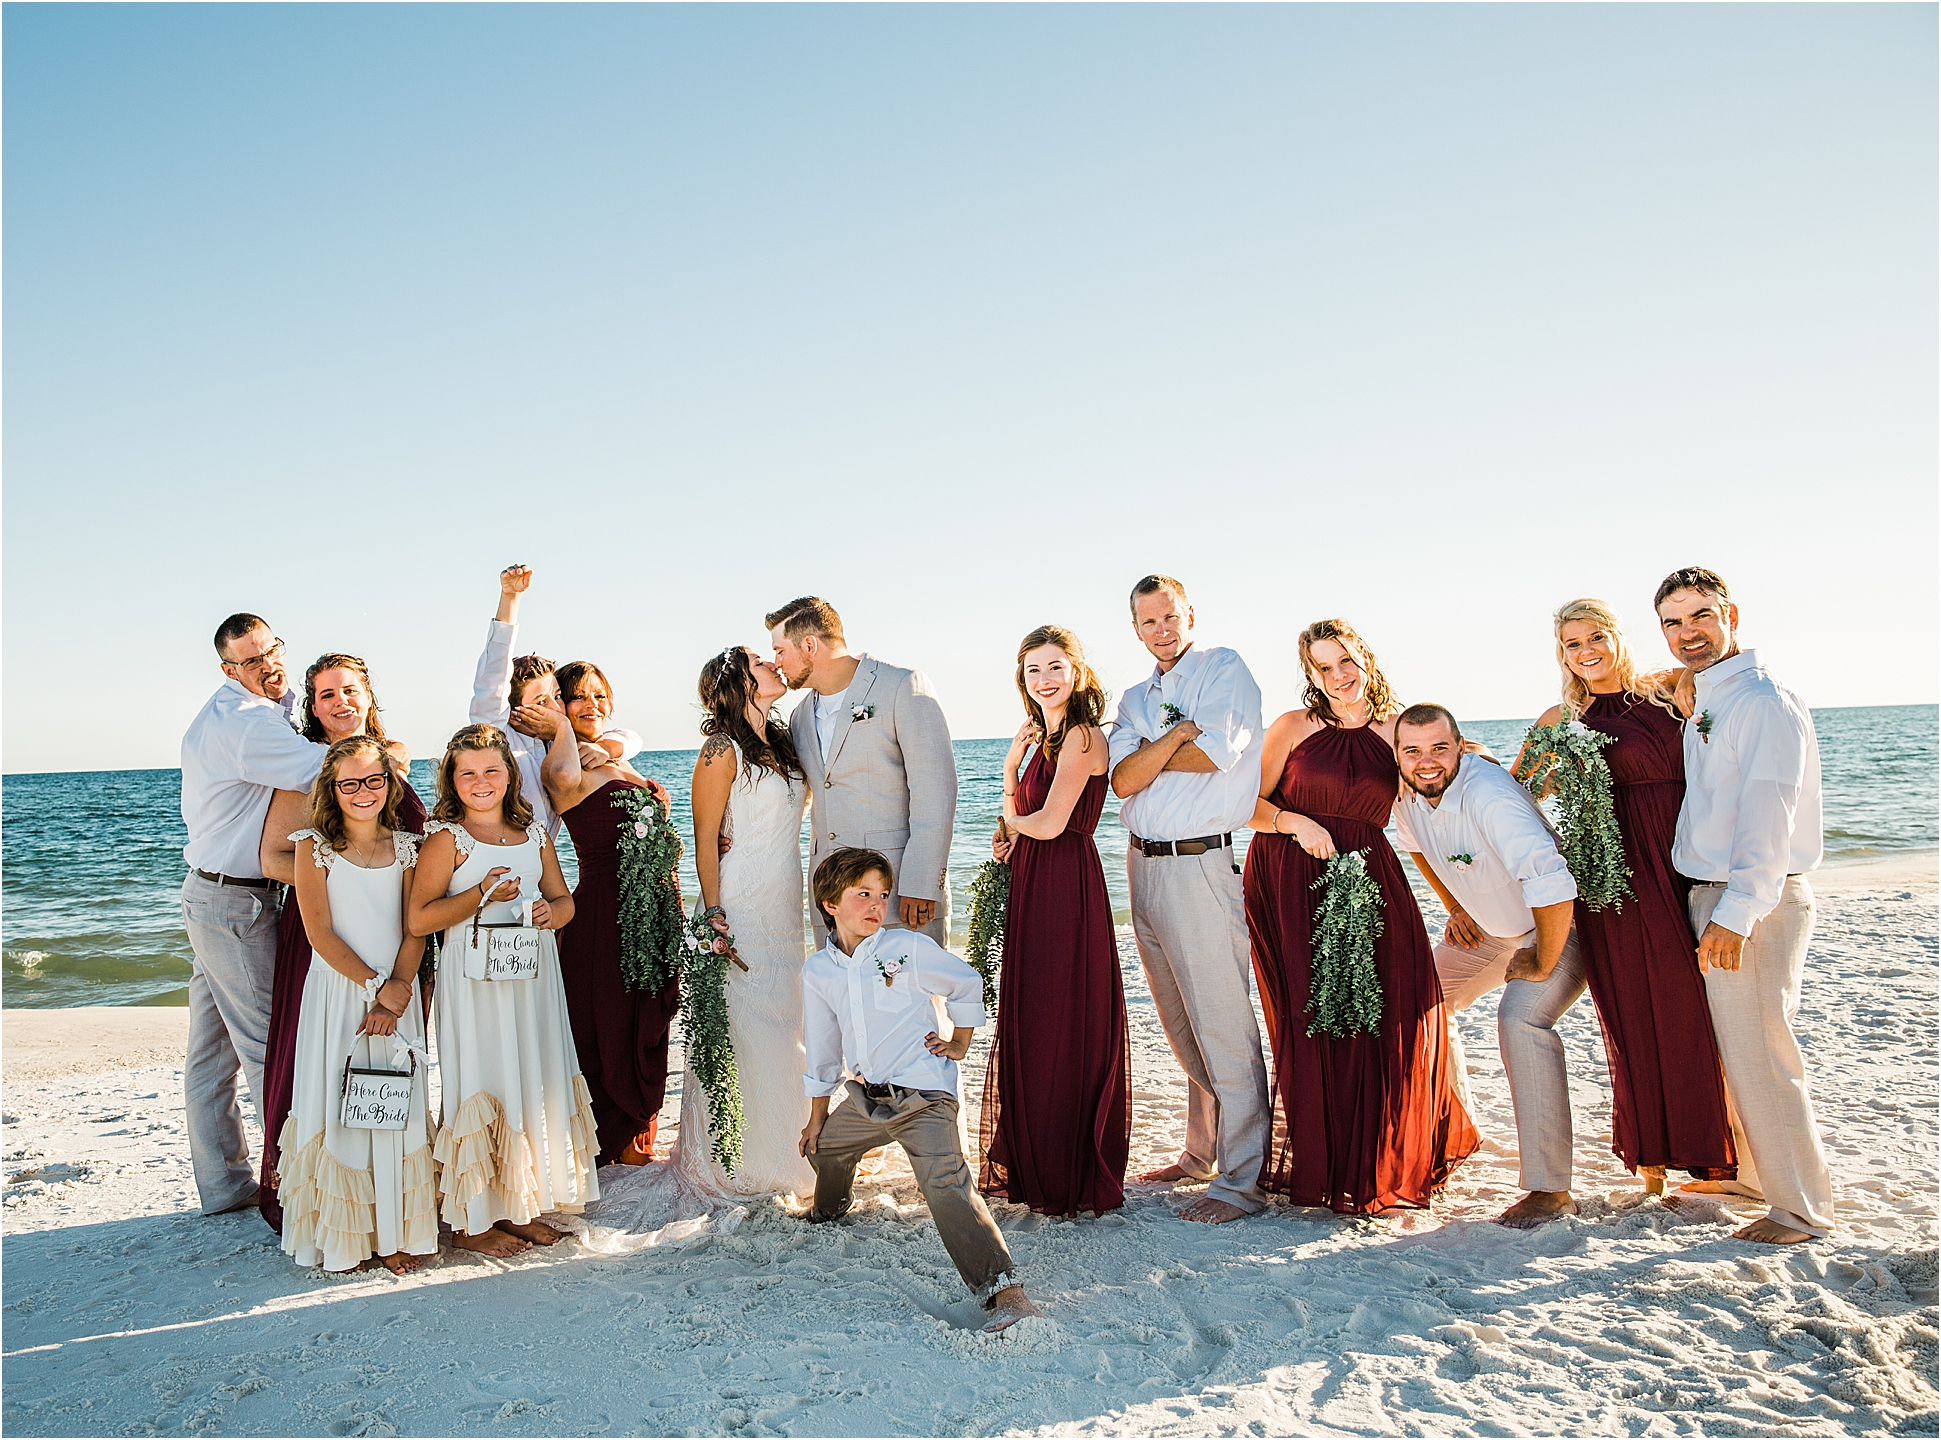 Bridal Party Pictures Ideas